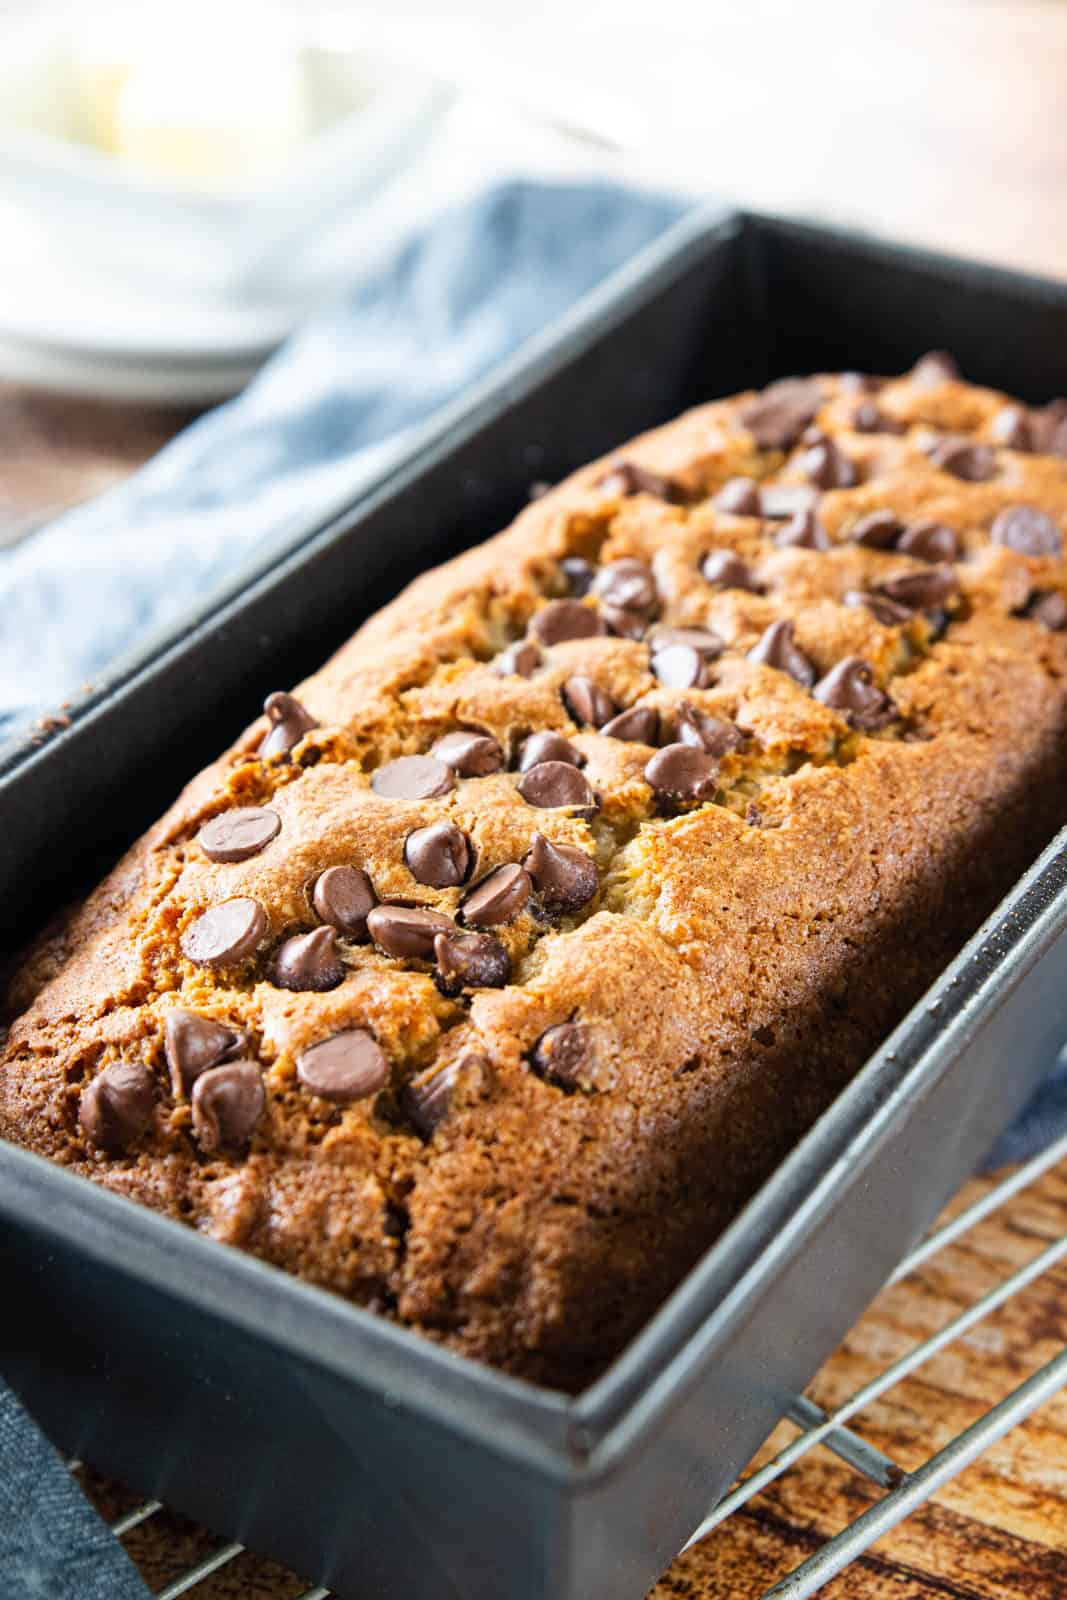 A freshly baked loaf of chocolate chip banana bread shown up close in a bread pan on a cooling rack.